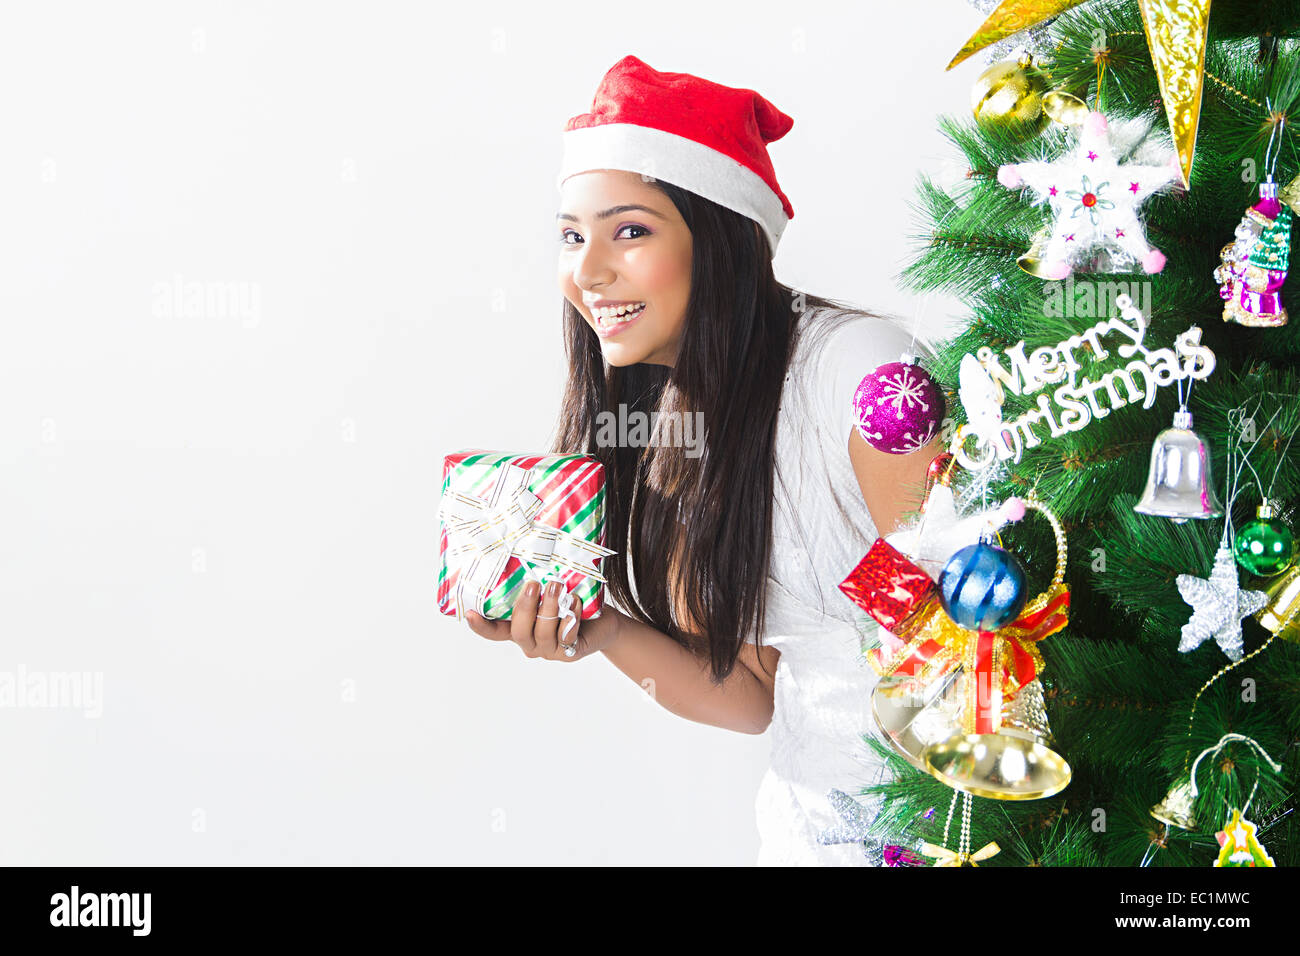 one indian lady Christmas Festival Surprise Gift Stock Photo ...